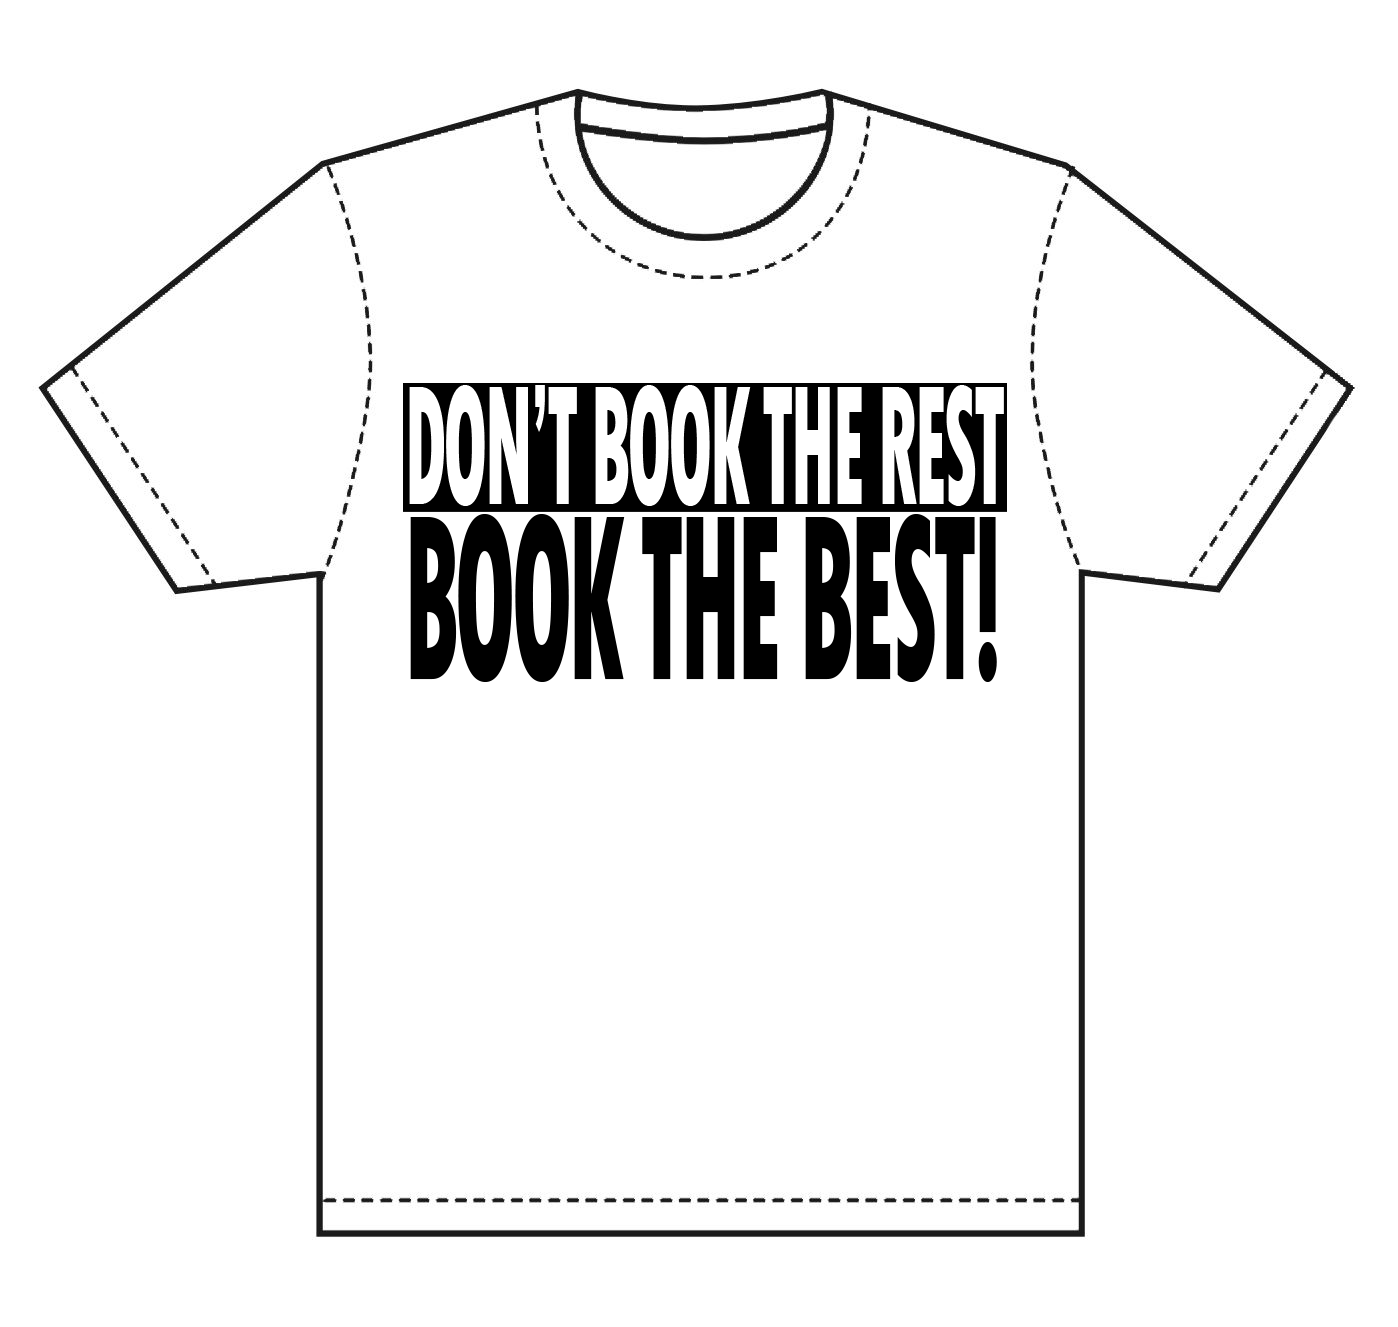 DON'T BOOK THE REST BOOK THE BEST T-SHIRT